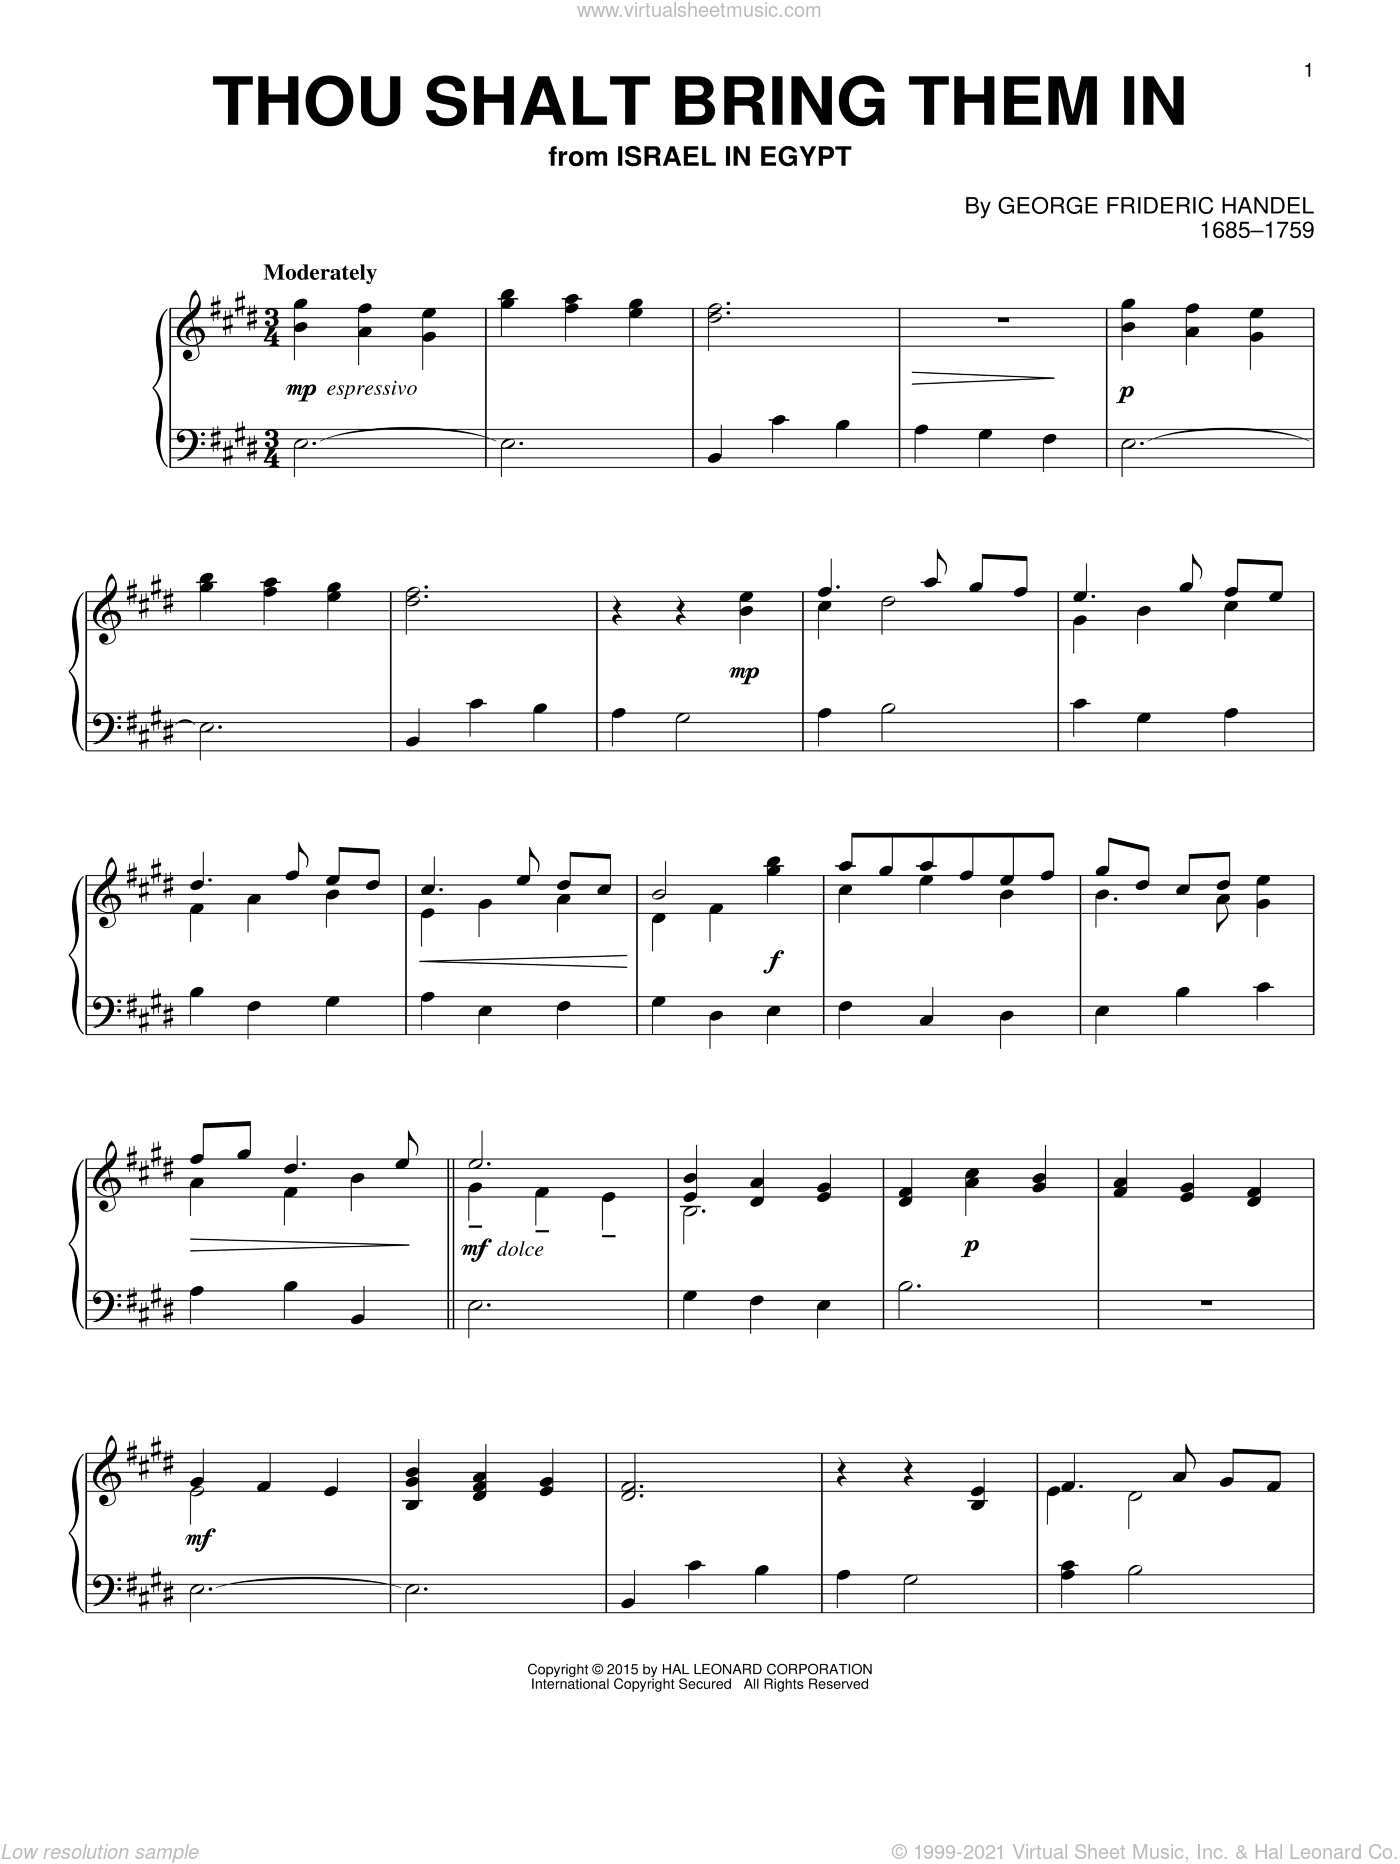 Thou Shalt Bring Them In sheet music for piano solo by George Frideric Handel, classical score, intermediate skill level